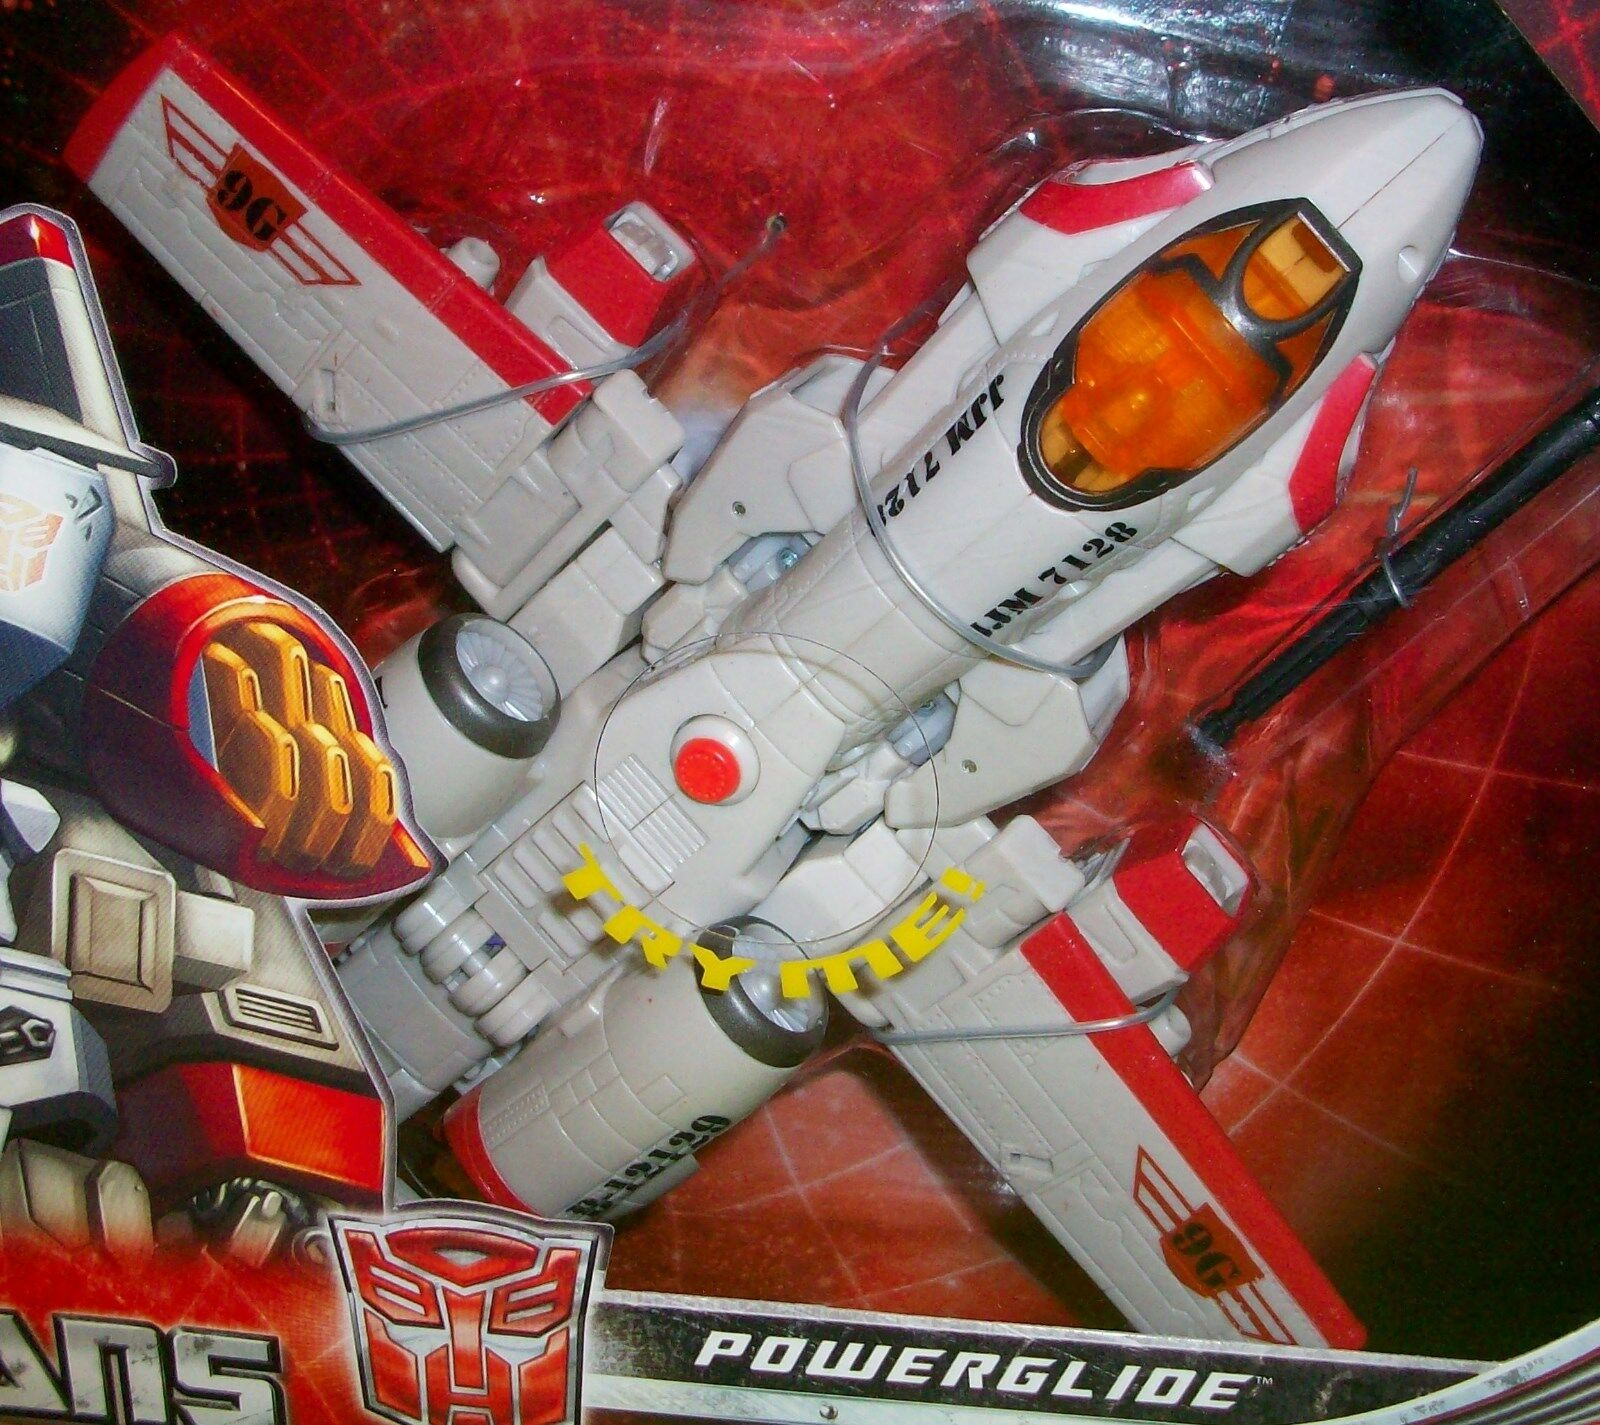 POWERGLIDE TRANSFORMERS Universe Classsic Series Fighter Jet Movie Robot Weapon